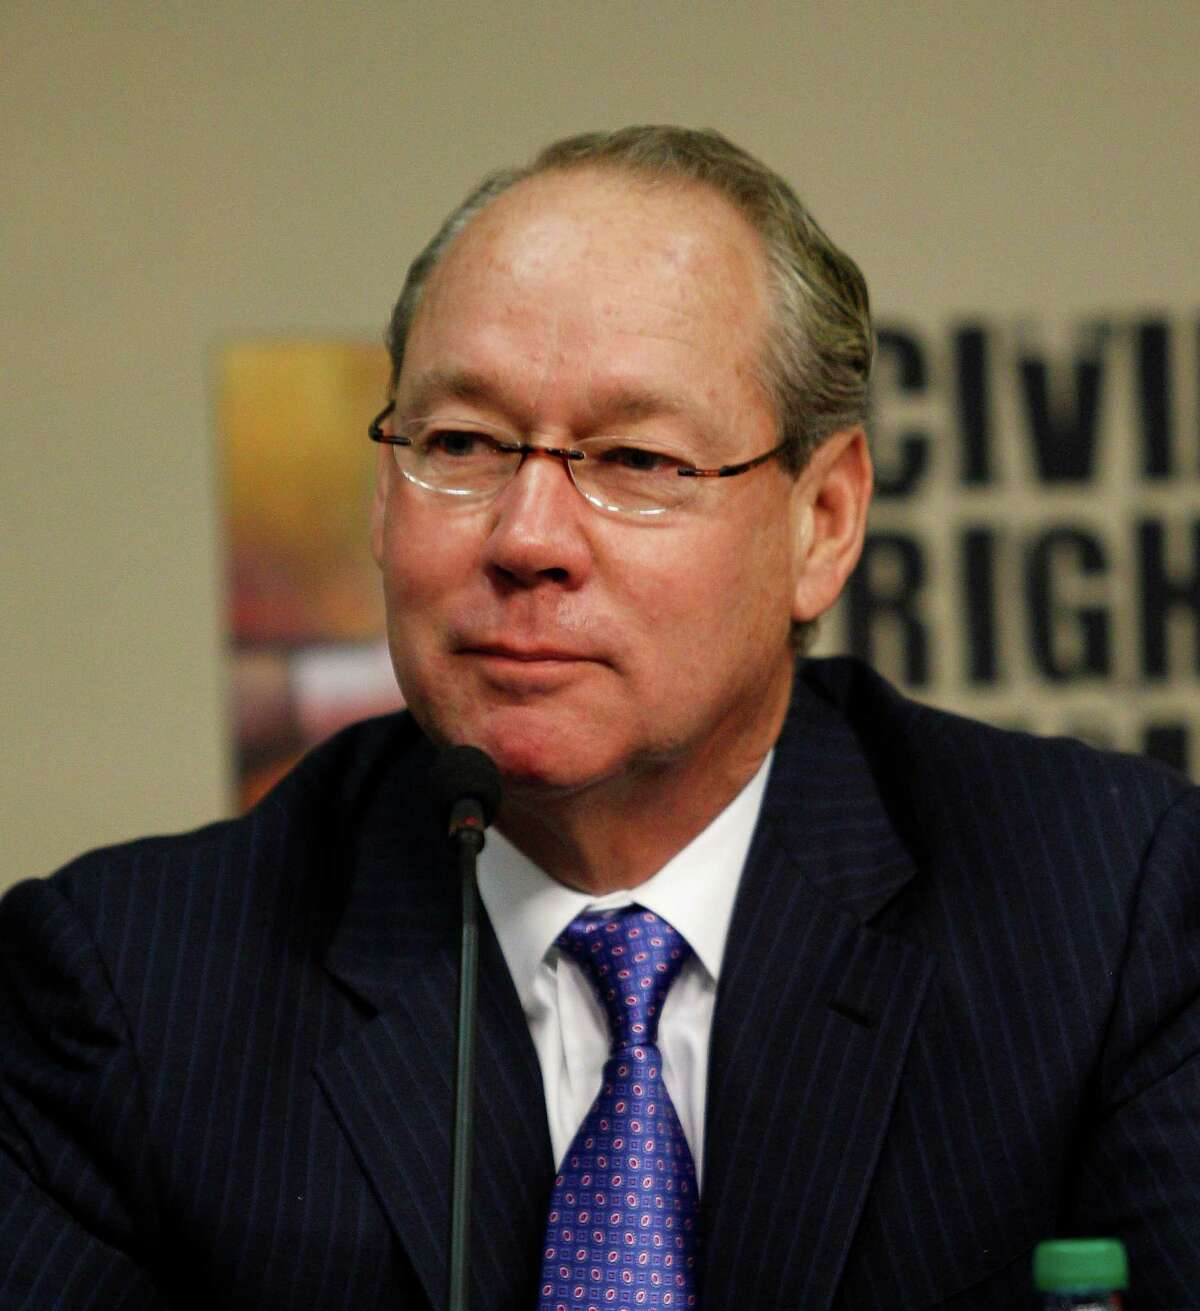 Houston Astros owner and chairman Jim Crane listens as it was announced that the Houston Astros will host the 2014 Civil Rights Game against the Baltimore Orioles May 30, 2014 during a press conference at Minute Maid Park, Tuesday, Nov.19, 2013 in Houston. (Bob Levey/For The Chronicle)